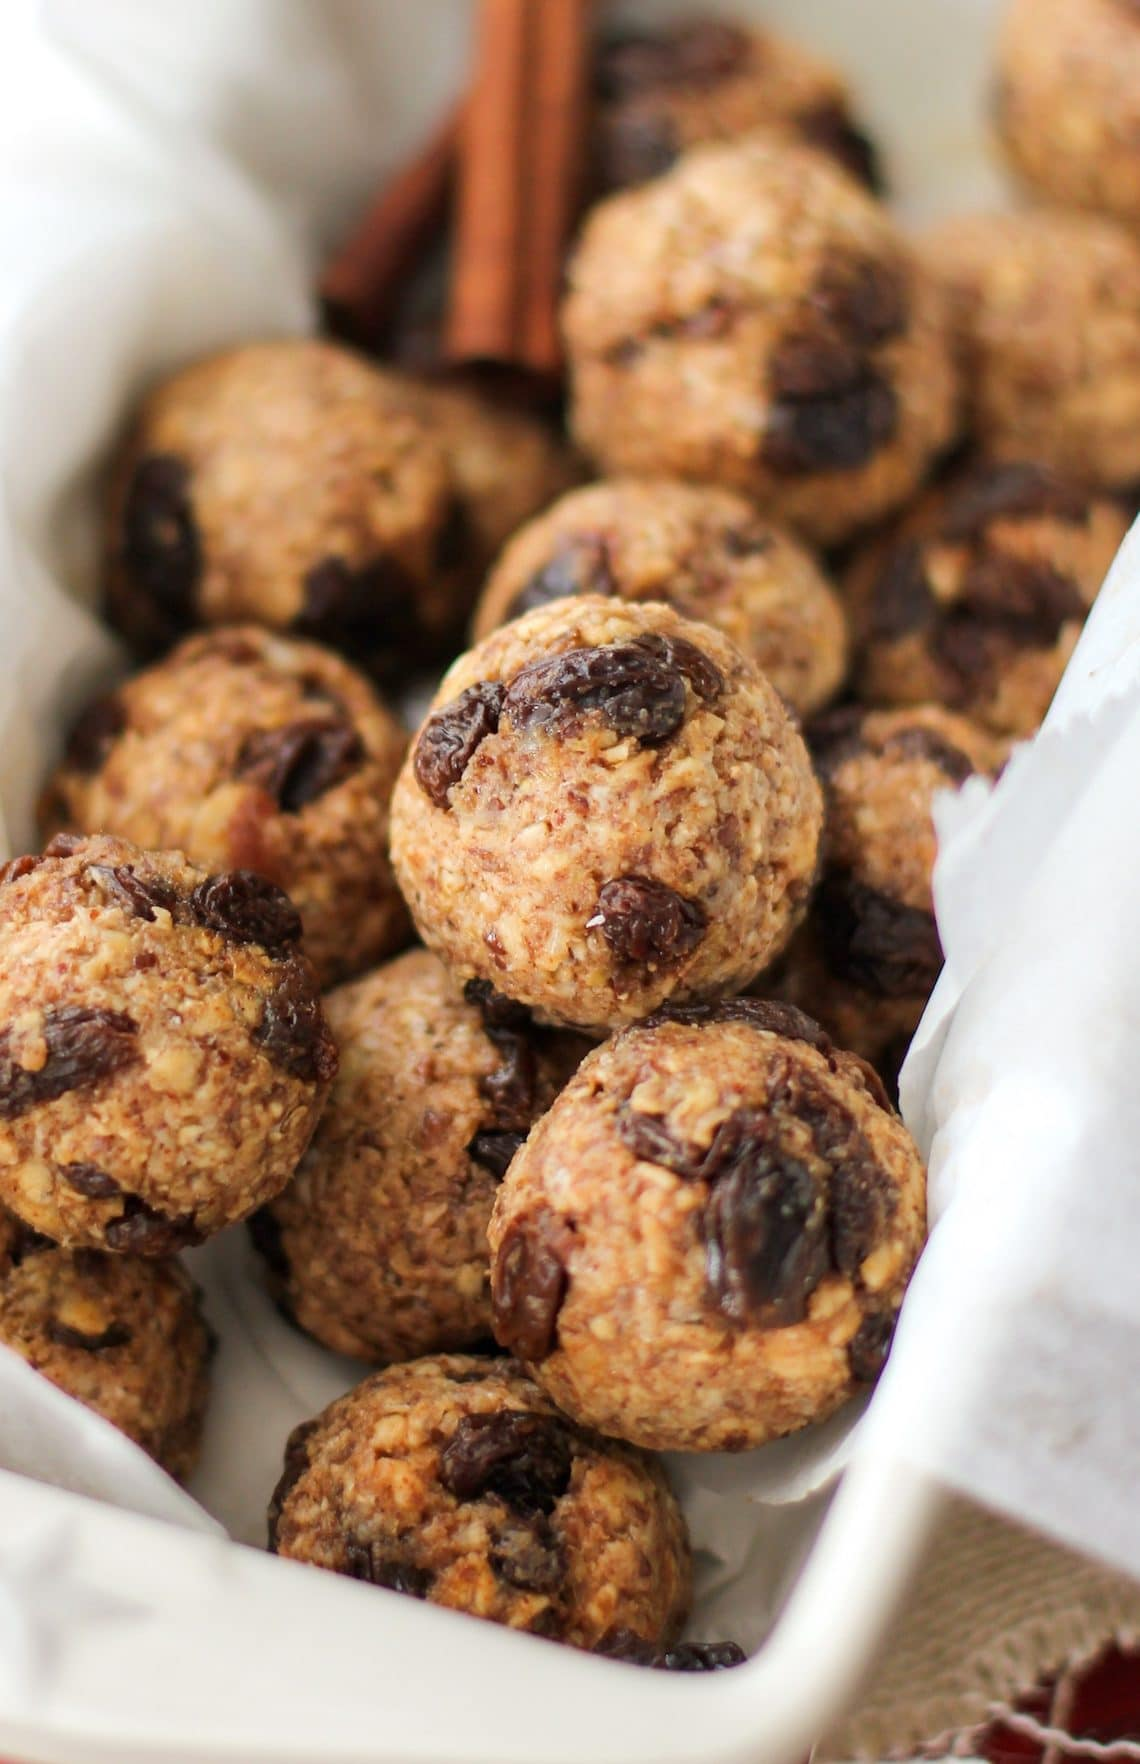 Healthy Oatmeal Raisin Cookie Energy Bites (refined sugar free, gluten free, dairy free, vegan) - Healthy Dessert Recipes at Desserts with Benefits